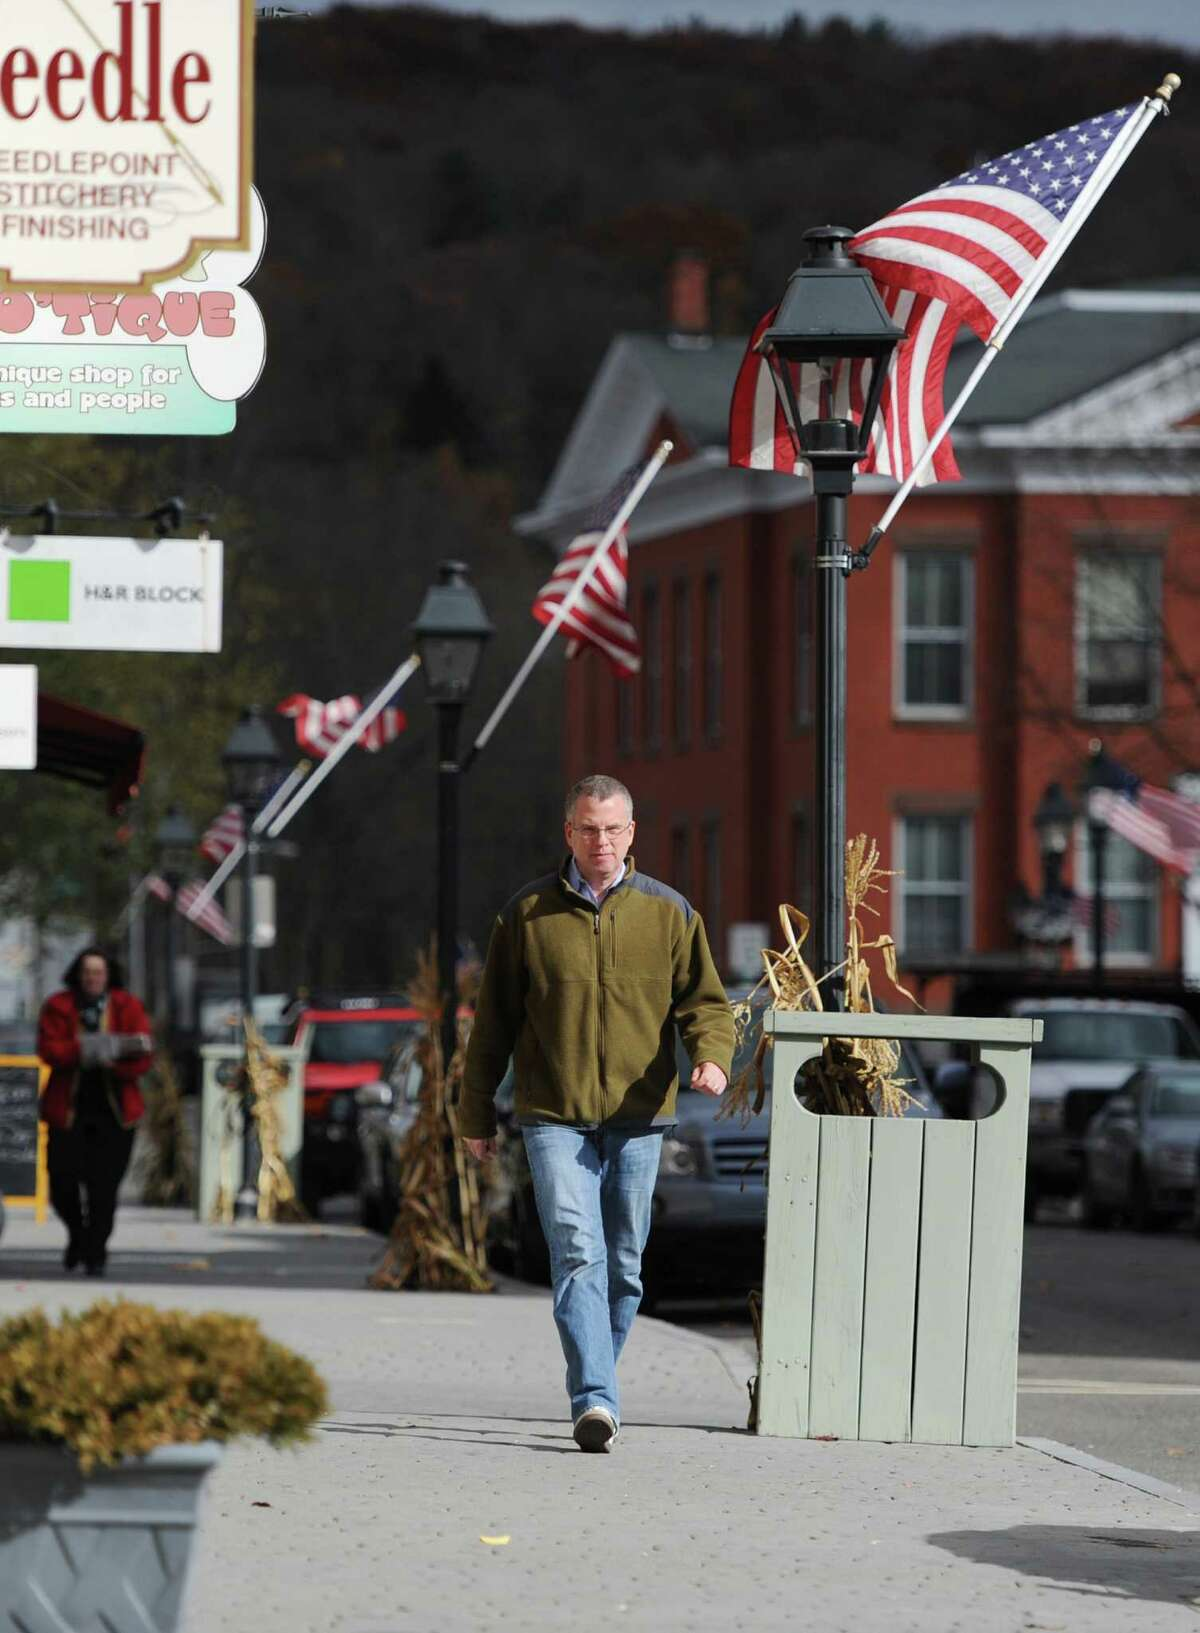 Tony Vengrove, of New Milford, walks down Bank Street in New Milford, Conn. on Friday, Nov. 8, 2013. New Milford is one of the most walkable towns in the area, ranking second out of 31 towns with a score of 88 according to Walkscore.com.